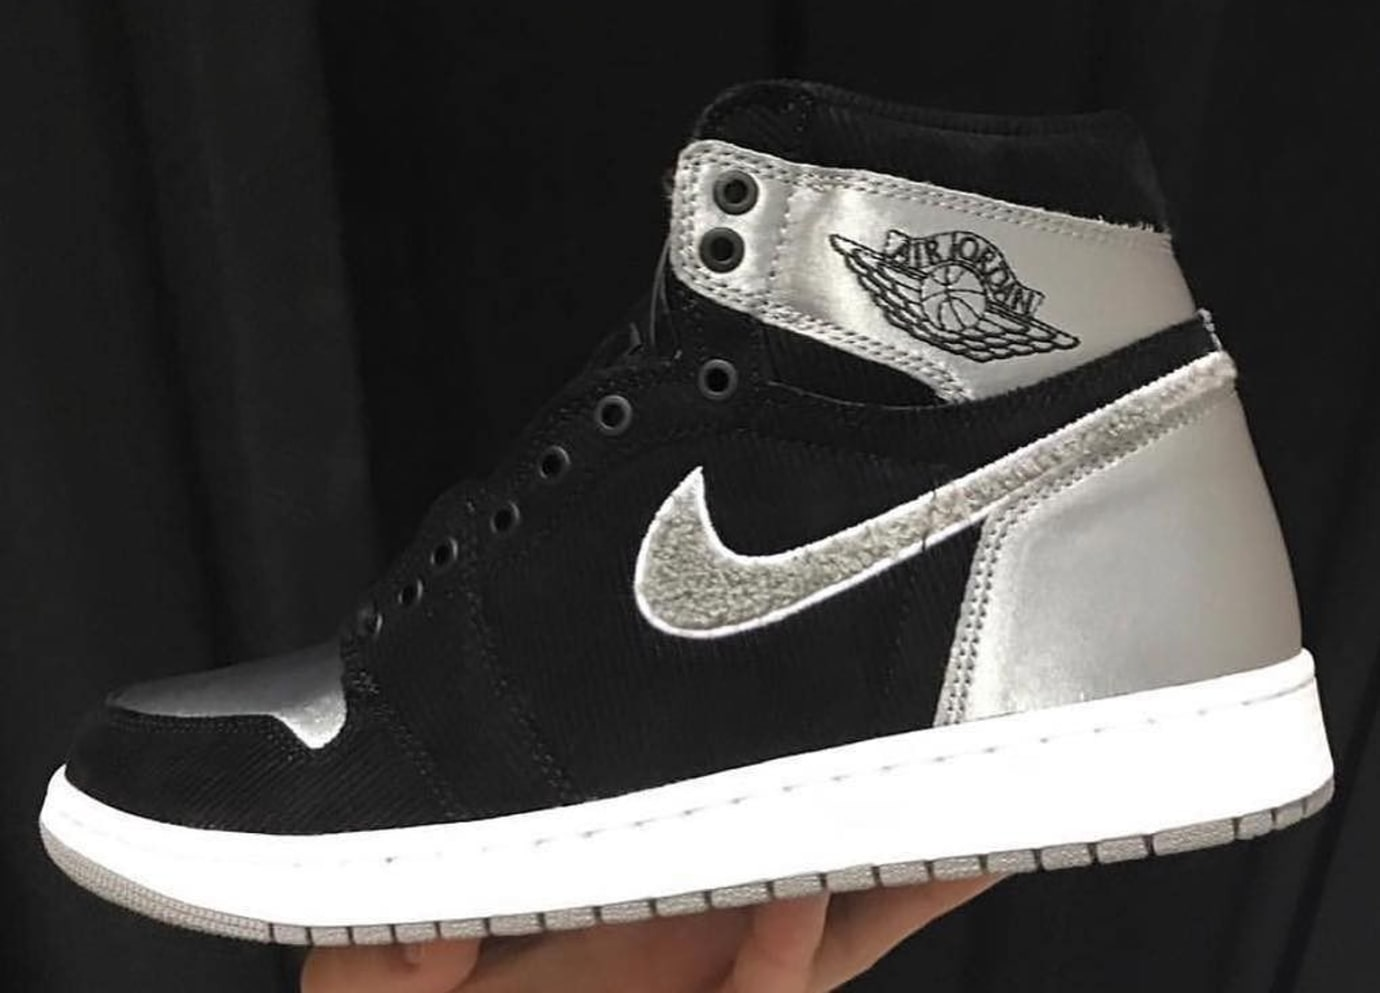 Aleali May x Air Jordan 1 Black/Silver Satin Release Date